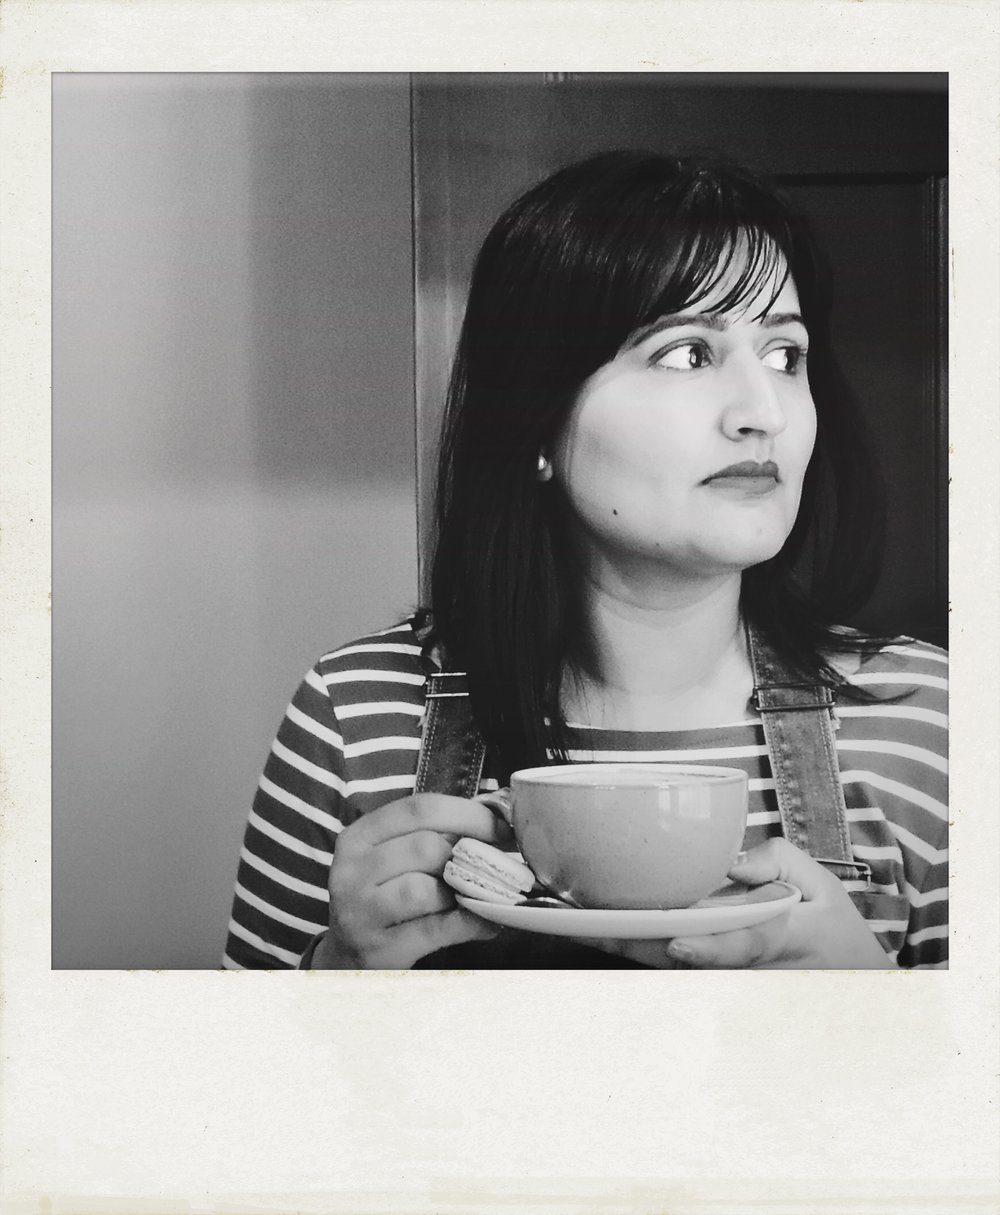 BEJAL GOSAI - BEJAL (AKA BE), IS A LEICESTER BORN AND BRED LADY JUGGLING A DOUBLE LIFE. HER 9-5 ENTAILS WORKING AS AN ONCOLOGY CLINICAL TRIALS QUALITY MANAGER, BUT EVERY MINUTE OF HER SPARE TIME IS SPENT BLOGGING ABOUT HER TRUE PASSION, TRAVEL. SHE LOVES LIVING LIFE TO THE FULLEST, DEVOURING HER WAY THROUGH EXPLORATION, ADVENTURE AND GASTRONOMY, WITH SPRINKLES OF LUXURY!